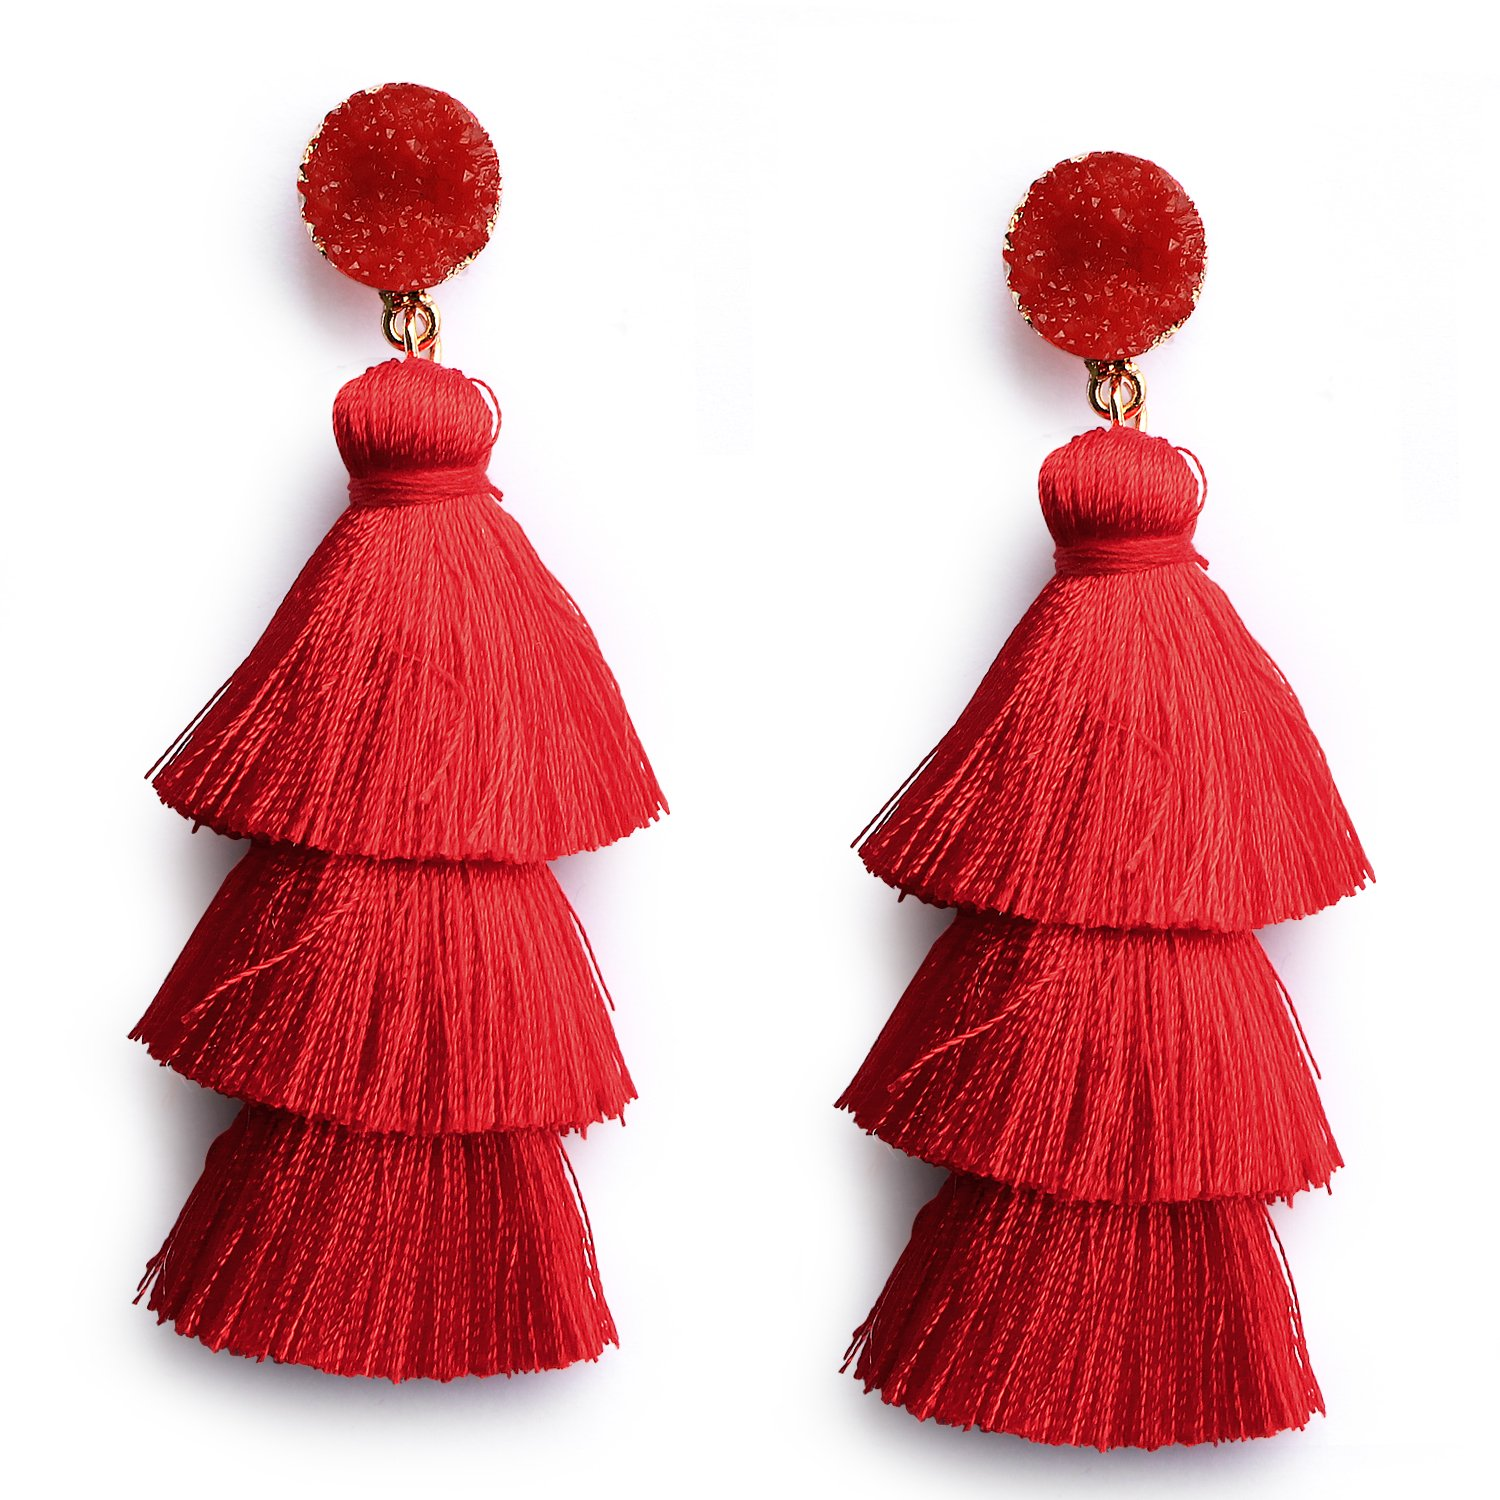 Me&Hz Red Thread Tassel Earrings Statement Layered Fringe Drop Earrings Chandelier Dangle Studs Earrings